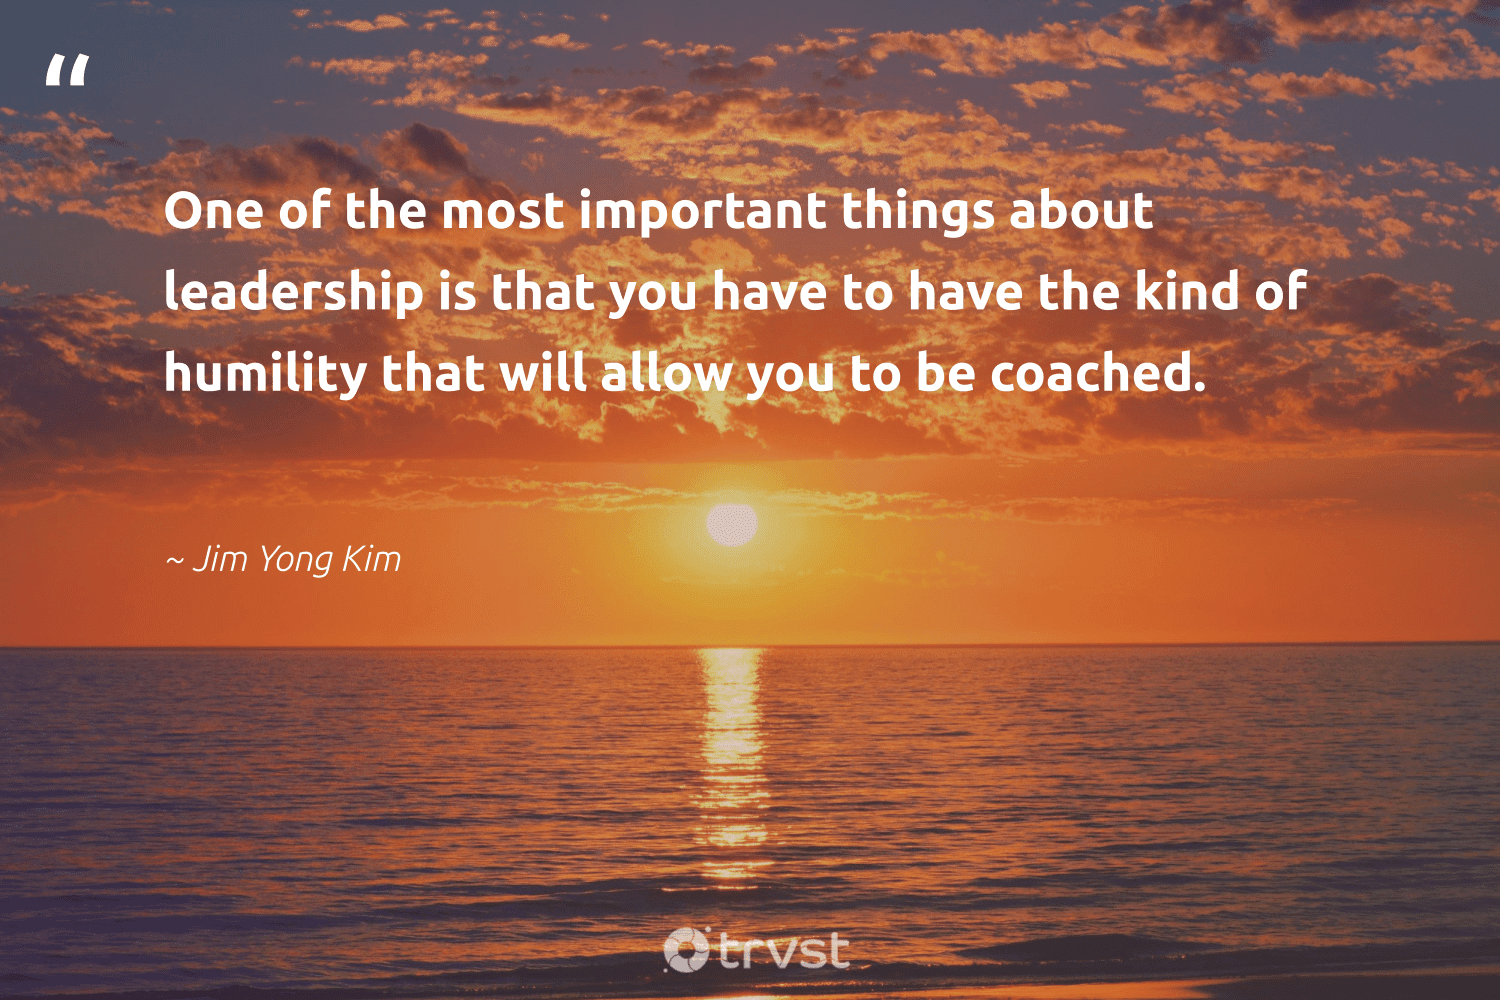 """""""One of the most important things about leadership is that you have to have the kind of humility that will allow you to be coached.""""  - Jim Yong Kim #trvst #quotes #leadership #leadershipdevelopment #futureofwork #begreat #bethechange #leadershipskills #nevergiveup #softskills #gogreen #leadershipqualities"""